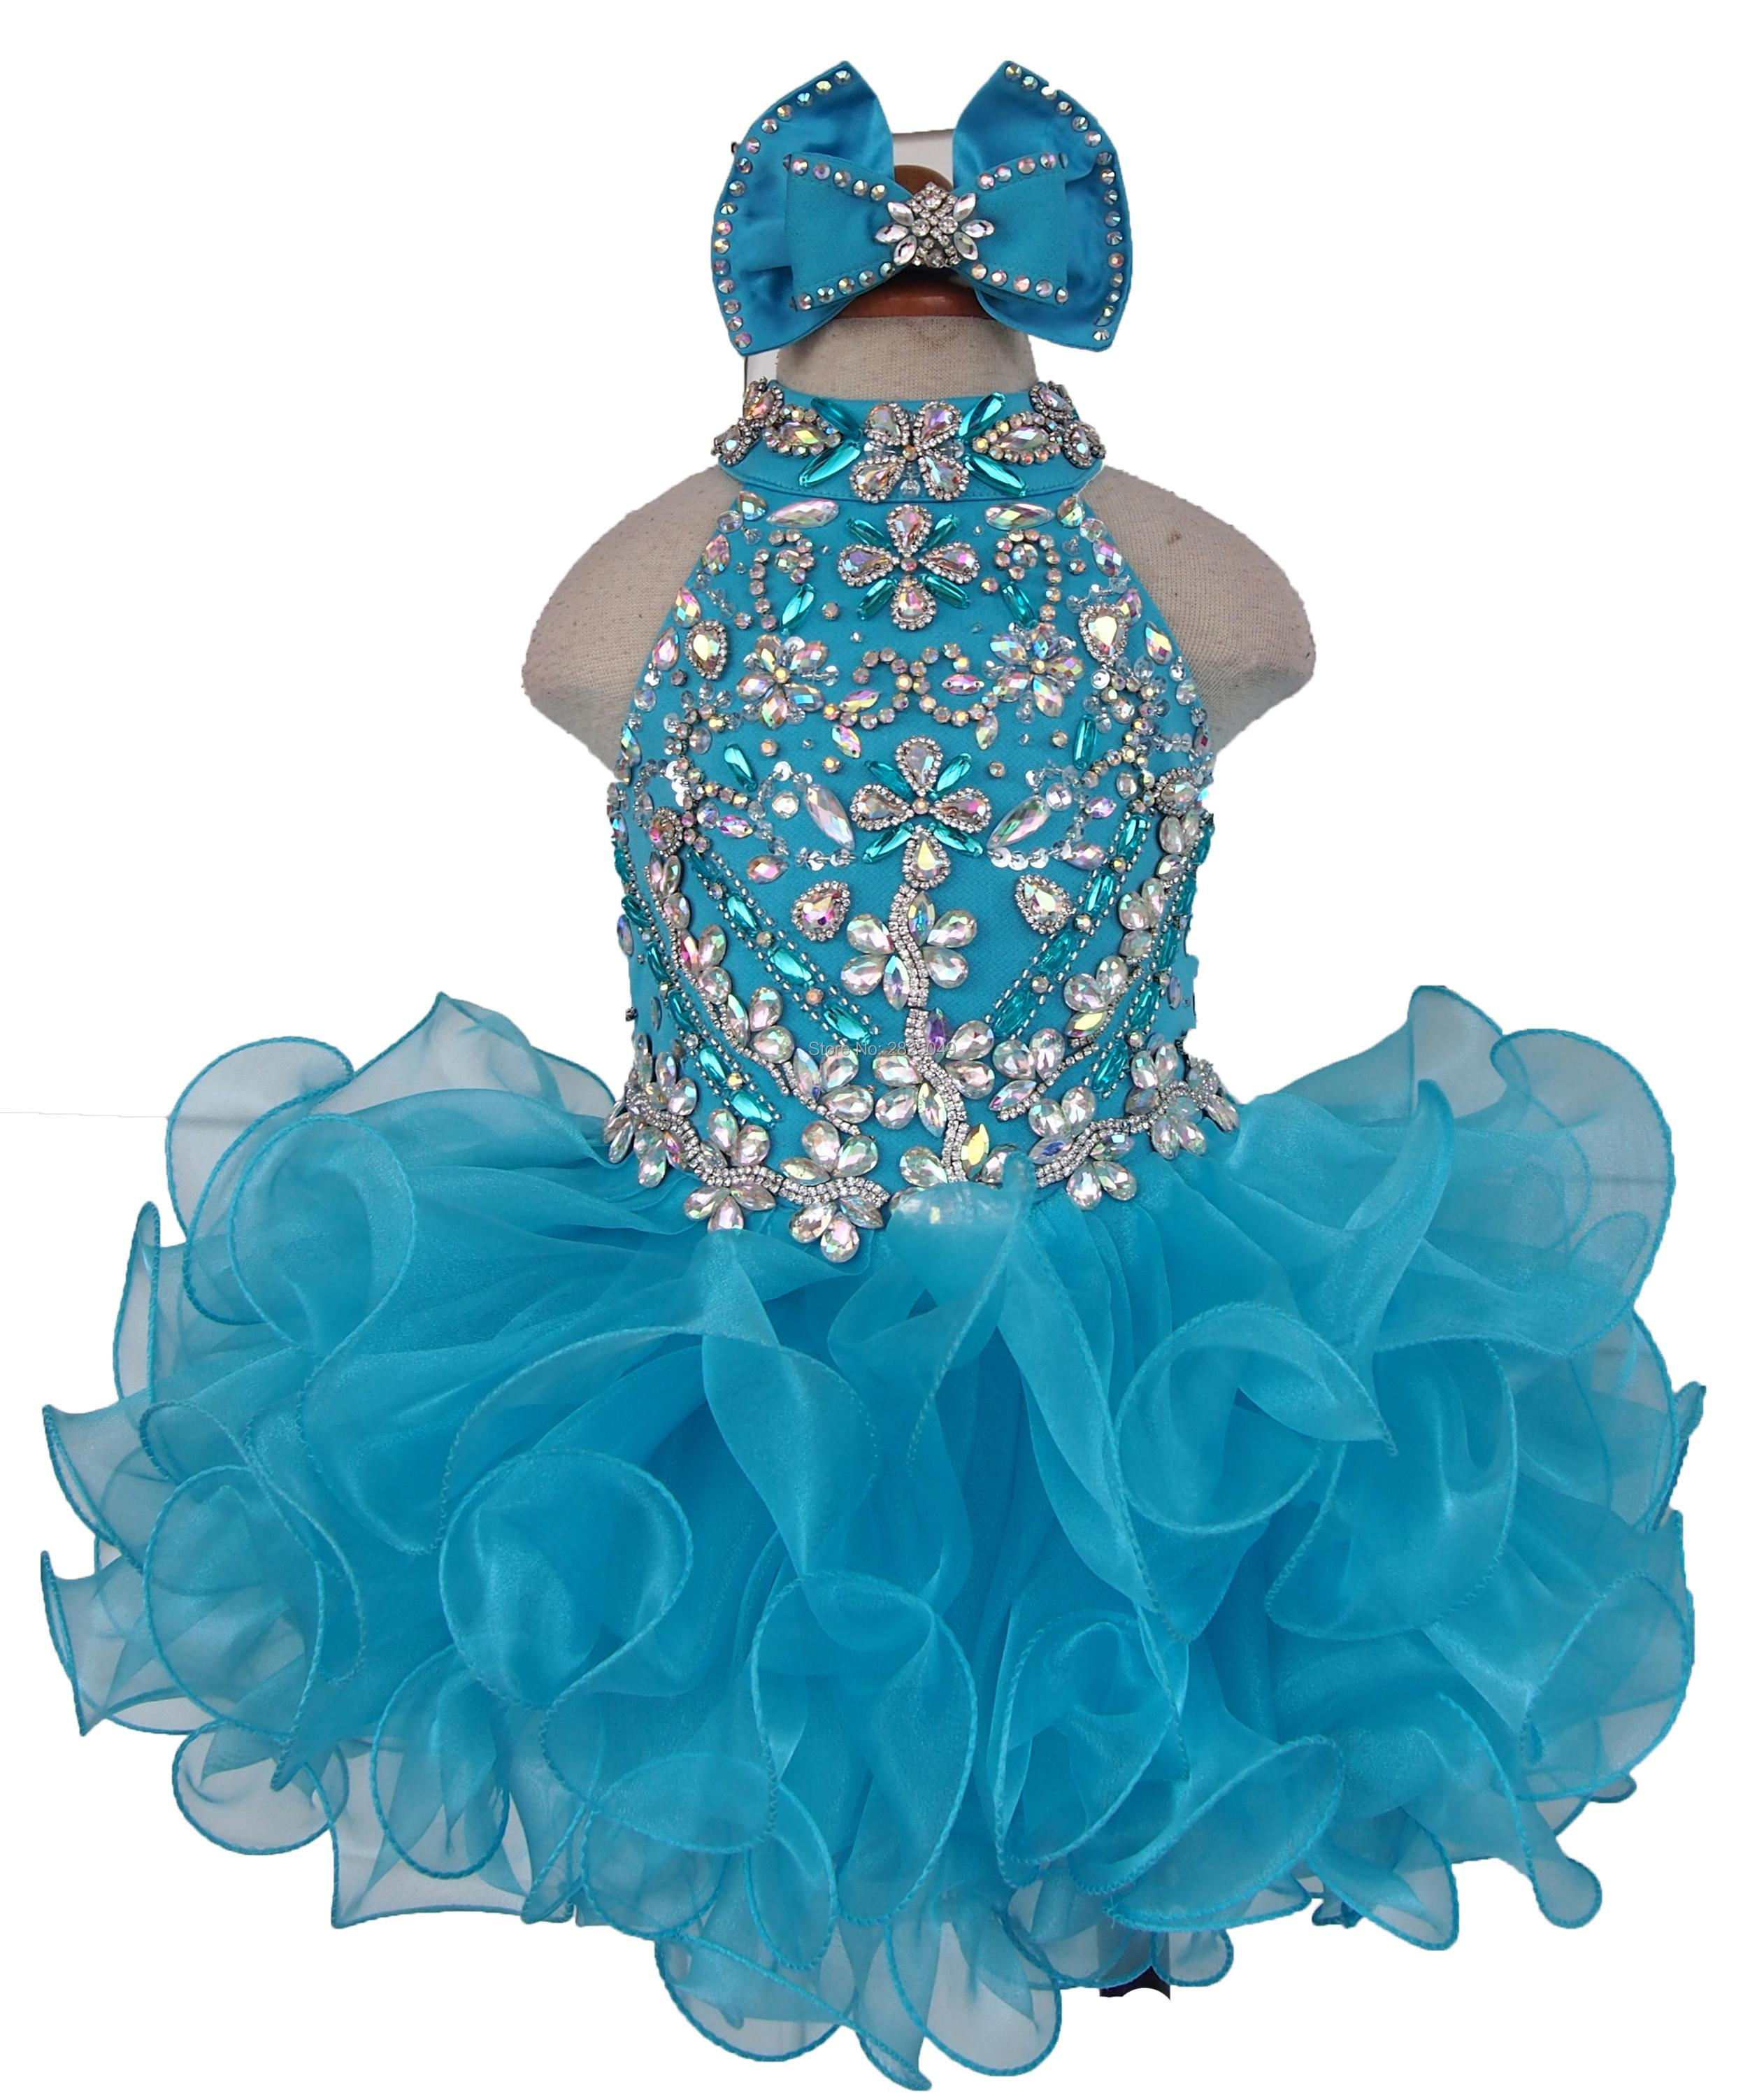 baby  and toddler girl clothes  girl dresses  flower girl dresses girl party dresses1T-6T G284-5 glitz baby and toddler girl formal dress girl party dresses girl brand clothes and 1t 6t g284 2